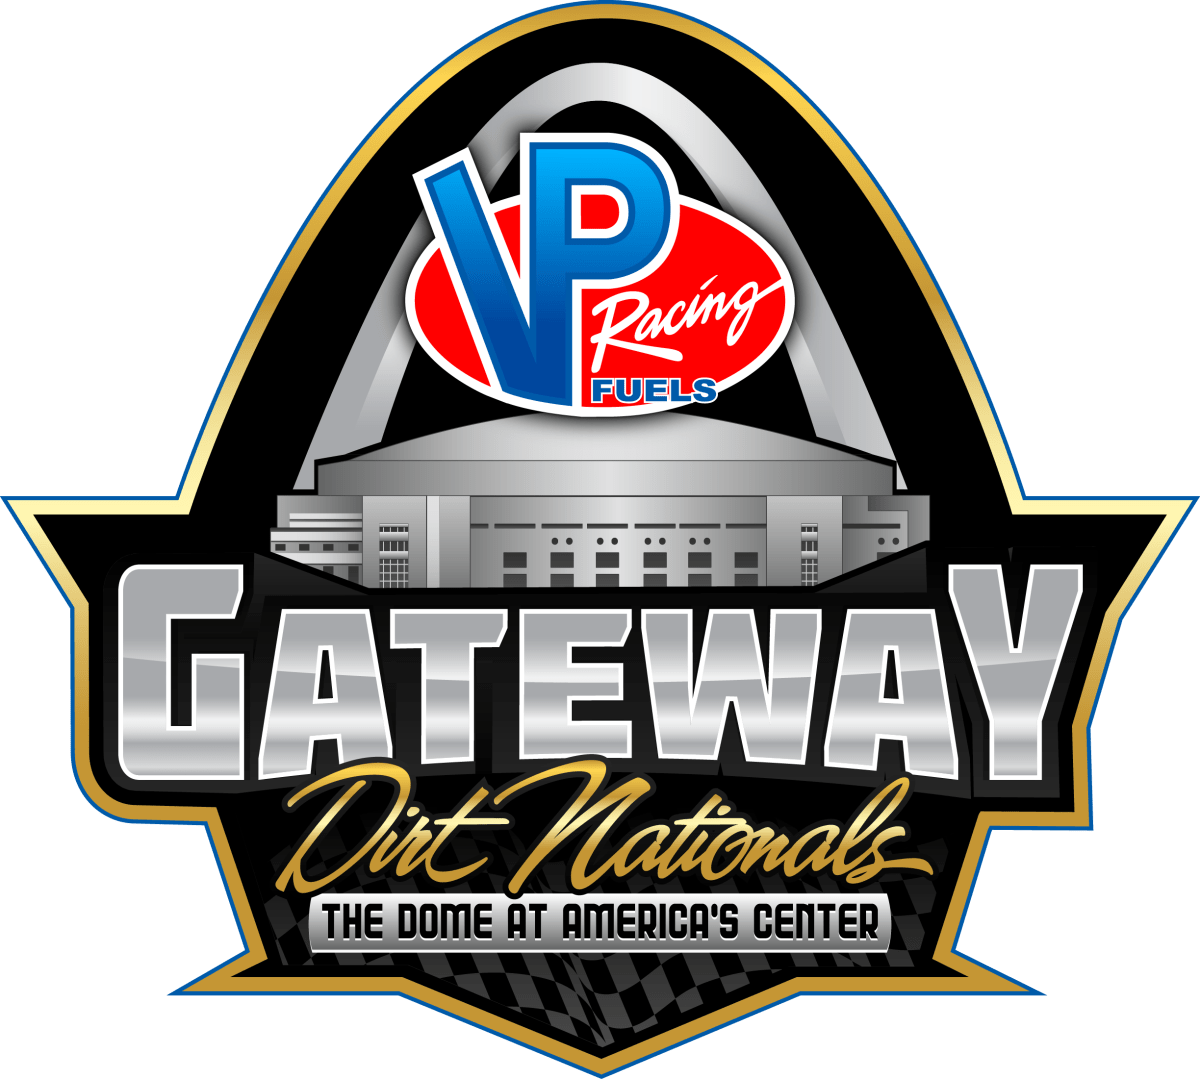 Gateway Dirt Nationals Late Model Qualifying Results - 12/15/16